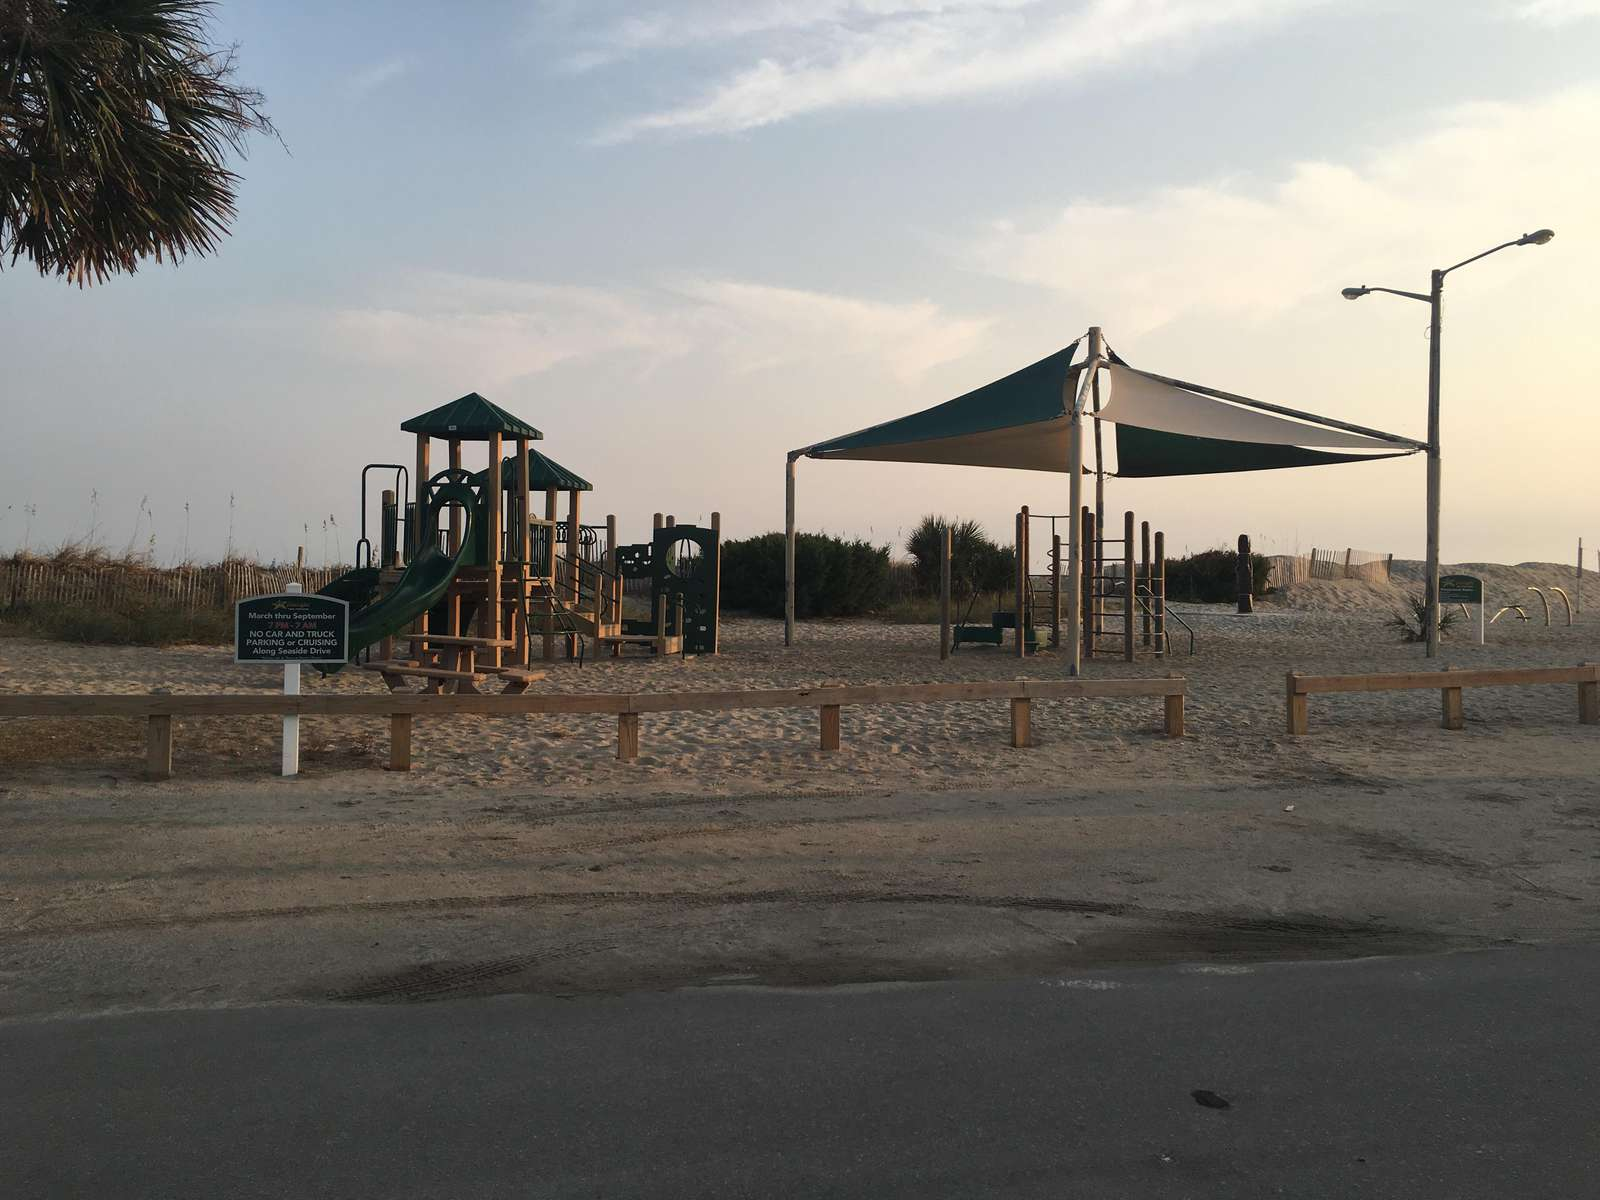 One of the two play grounds